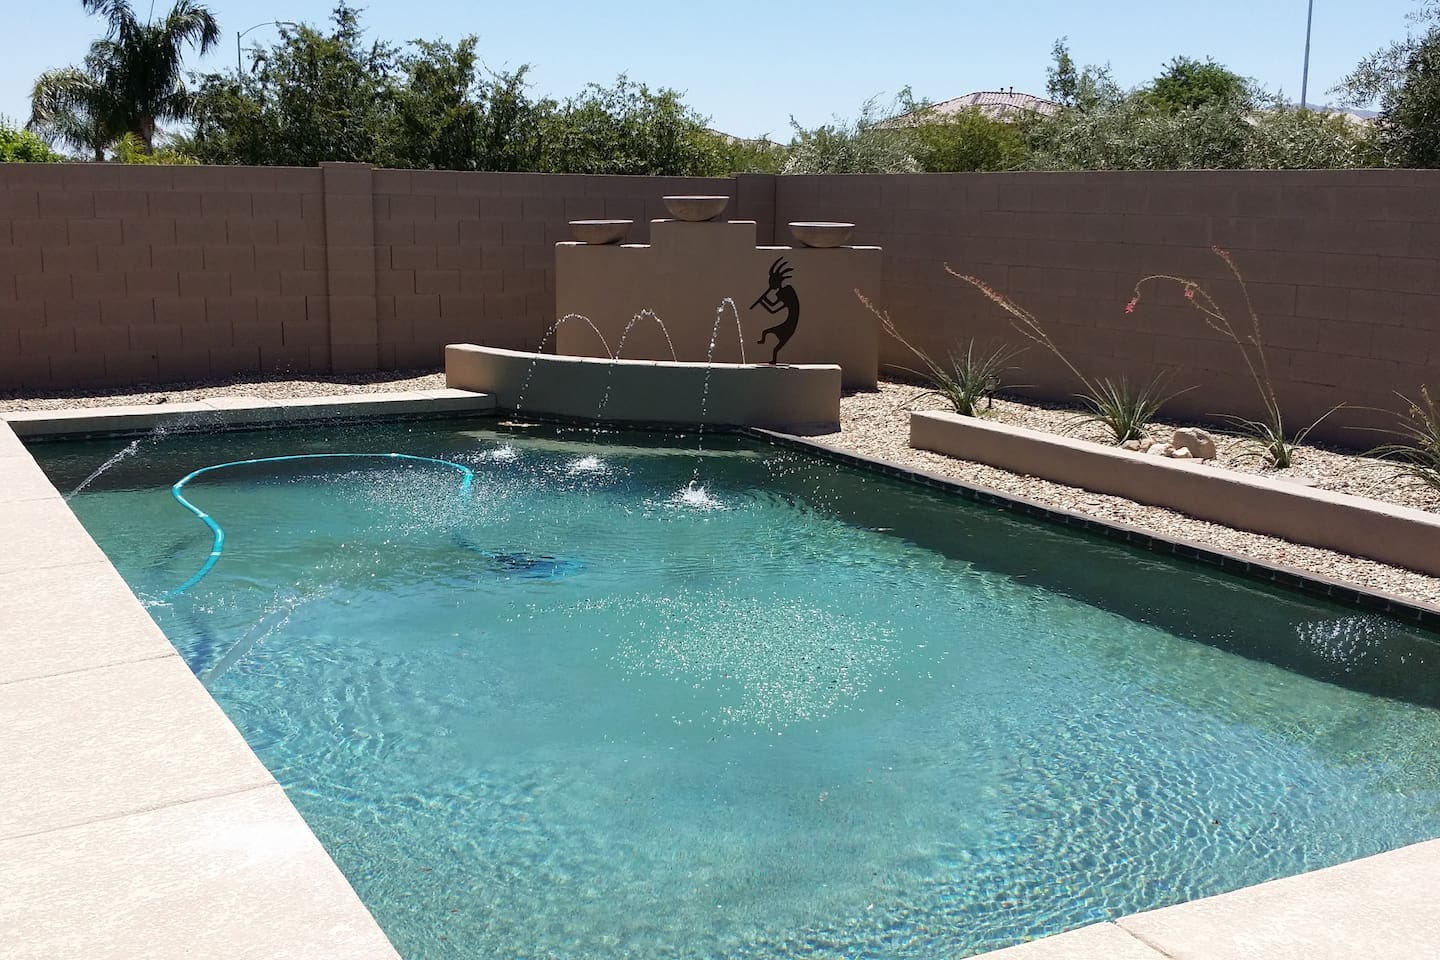 25 x 14 ft pool 5 ft 6 in deep on far side with arching jets and pool heat is optional. Shallow end 3 ft deep